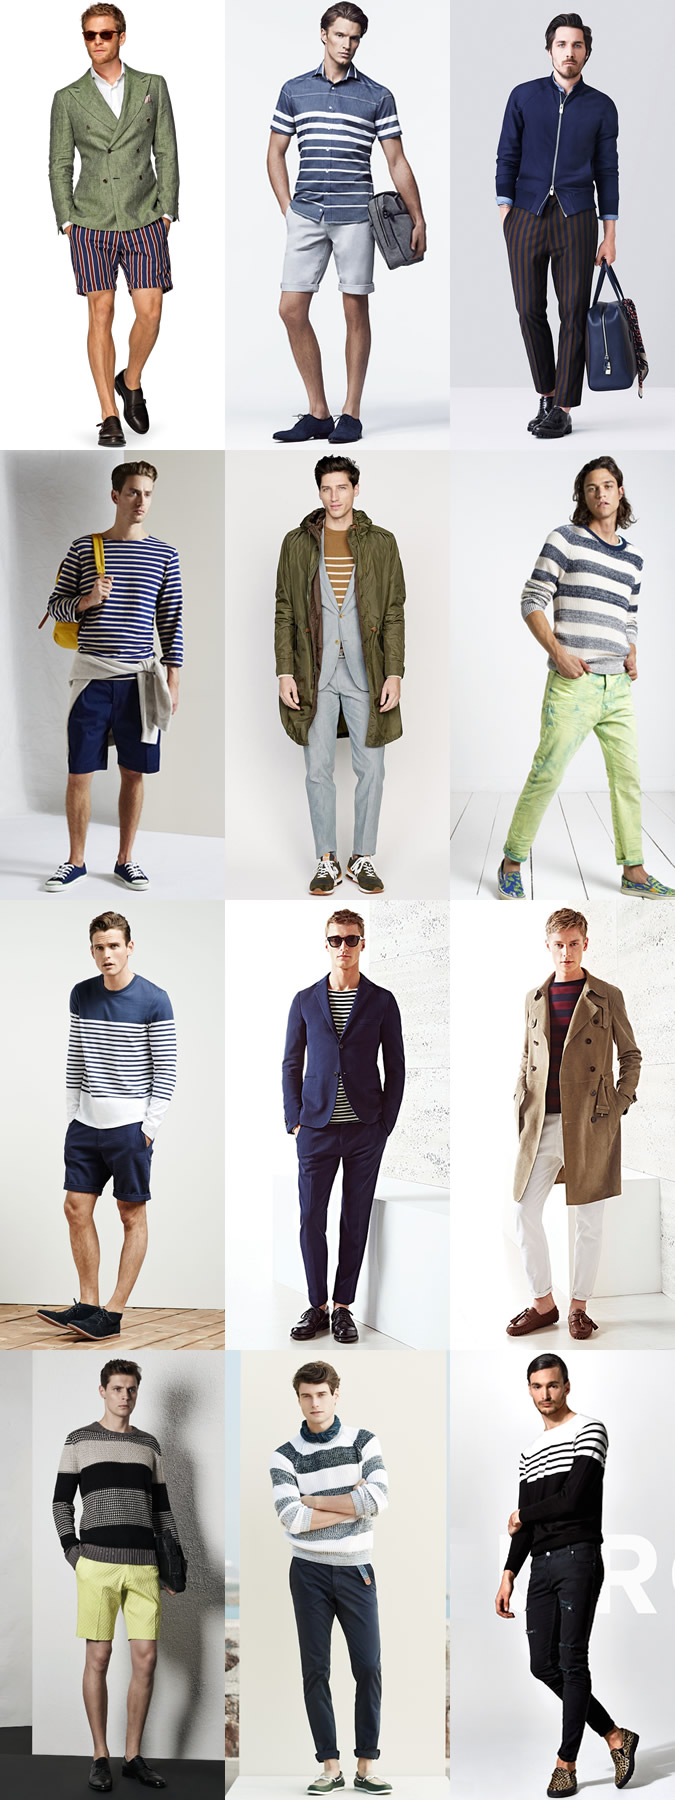 Men's Striped Clothing Spring/Summer Outfit Inspiration Lookbook